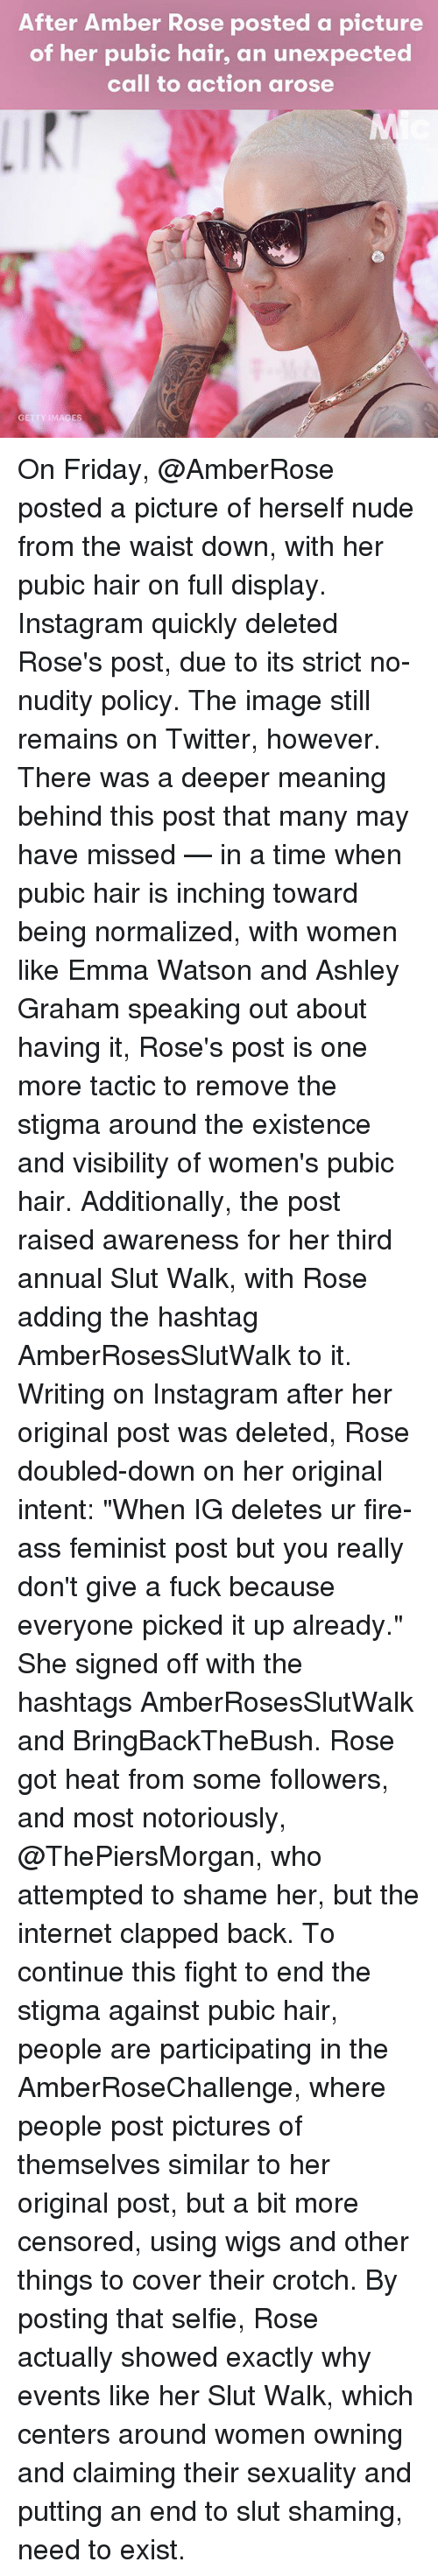 "Amber Rose, Ass, and Emma Watson: After Amber Rose posted a picture  of her pubic hair, an unexpected  call to action arose  IMAGES On Friday, @AmberRose posted a picture of herself nude from the waist down, with her pubic hair on full display. Instagram quickly deleted Rose's post, due to its strict no-nudity policy. The image still remains on Twitter, however. There was a deeper meaning behind this post that many may have missed — in a time when pubic hair is inching toward being normalized, with women like Emma Watson and Ashley Graham speaking out about having it, Rose's post is one more tactic to remove the stigma around the existence and visibility of women's pubic hair. Additionally, the post raised awareness for her third annual Slut Walk, with Rose adding the hashtag AmberRosesSlutWalk to it. Writing on Instagram after her original post was deleted, Rose doubled-down on her original intent: ""When IG deletes ur fire-ass feminist post but you really don't give a fuck because everyone picked it up already."" She signed off with the hashtags AmberRosesSlutWalk and BringBackTheBush. Rose got heat from some followers, and most notoriously, @ThePiersMorgan, who attempted to shame her, but the internet clapped back. To continue this fight to end the stigma against pubic hair, people are participating in the AmberRoseChallenge, where people post pictures of themselves similar to her original post, but a bit more censored, using wigs and other things to cover their crotch. By posting that selfie, Rose actually showed exactly why events like her Slut Walk, which centers around women owning and claiming their sexuality and putting an end to slut shaming, need to exist."